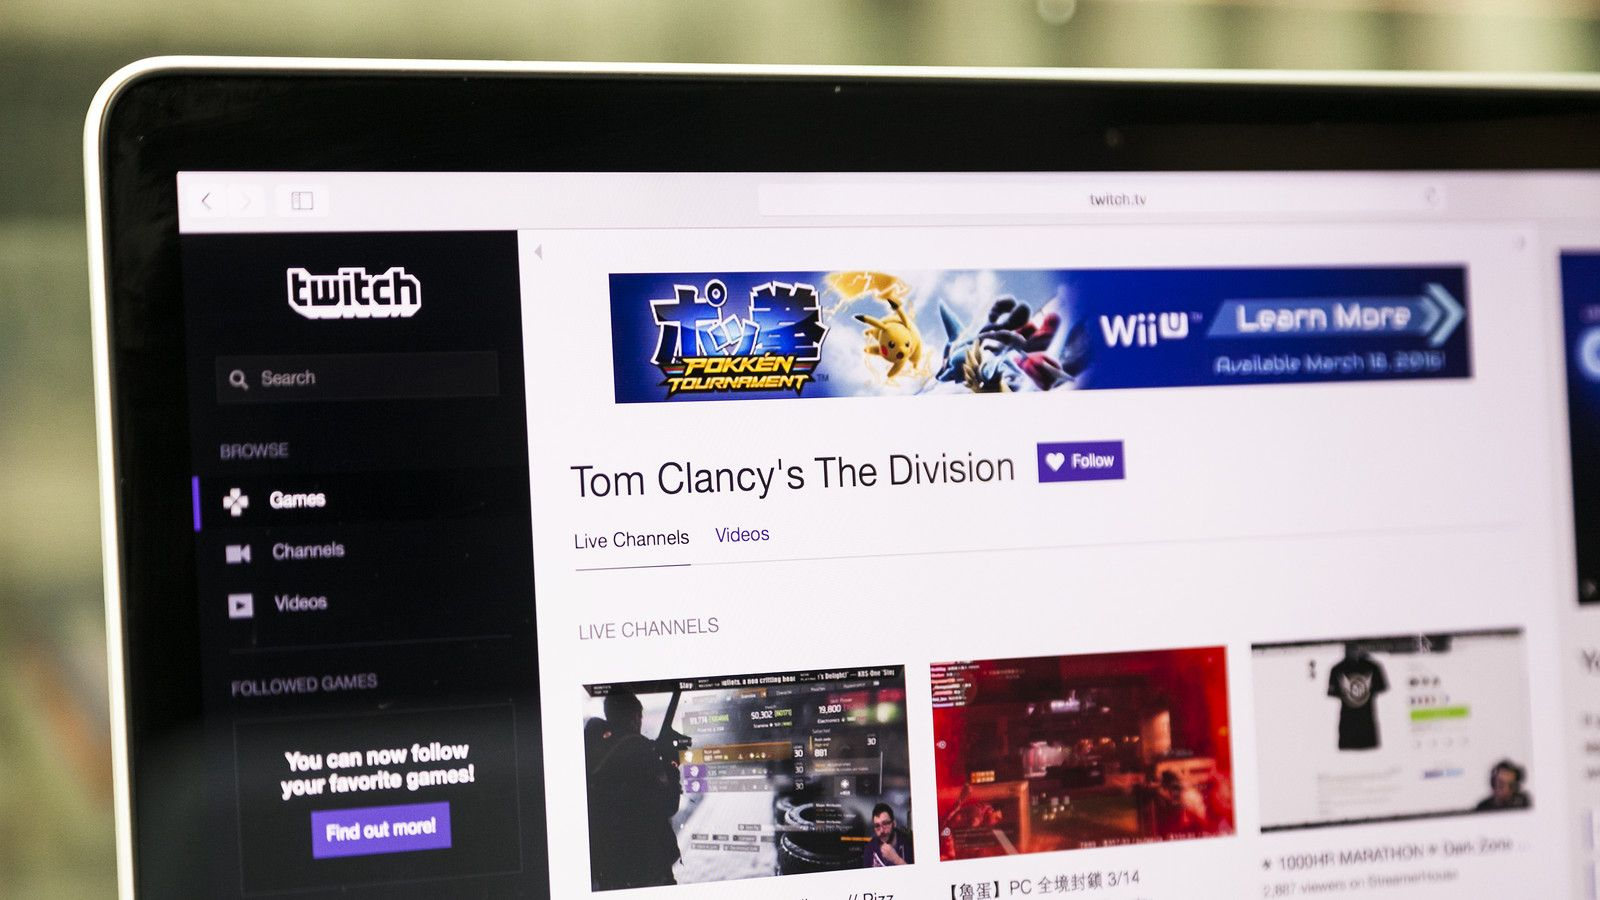 Twitch and Blizzard sign a deal to bring big e-sports events to the streaming service